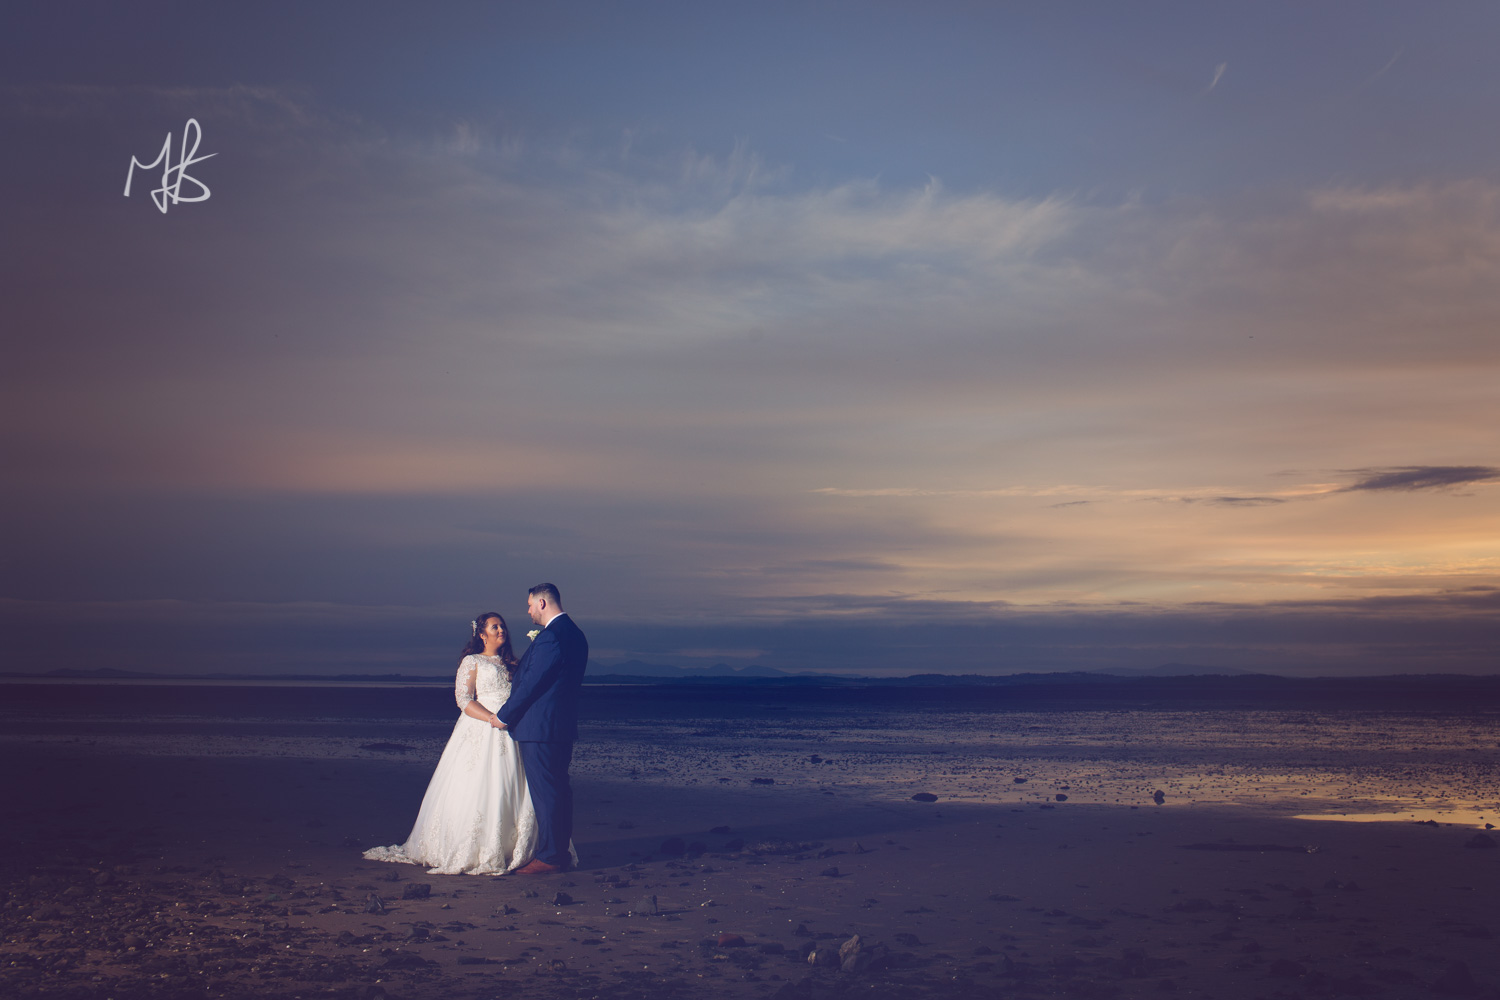 Mark_Barnes_Northern_Ireland_Wedding_Photography_Brownlow_House_Wedding_Photography-previews-4.jpg